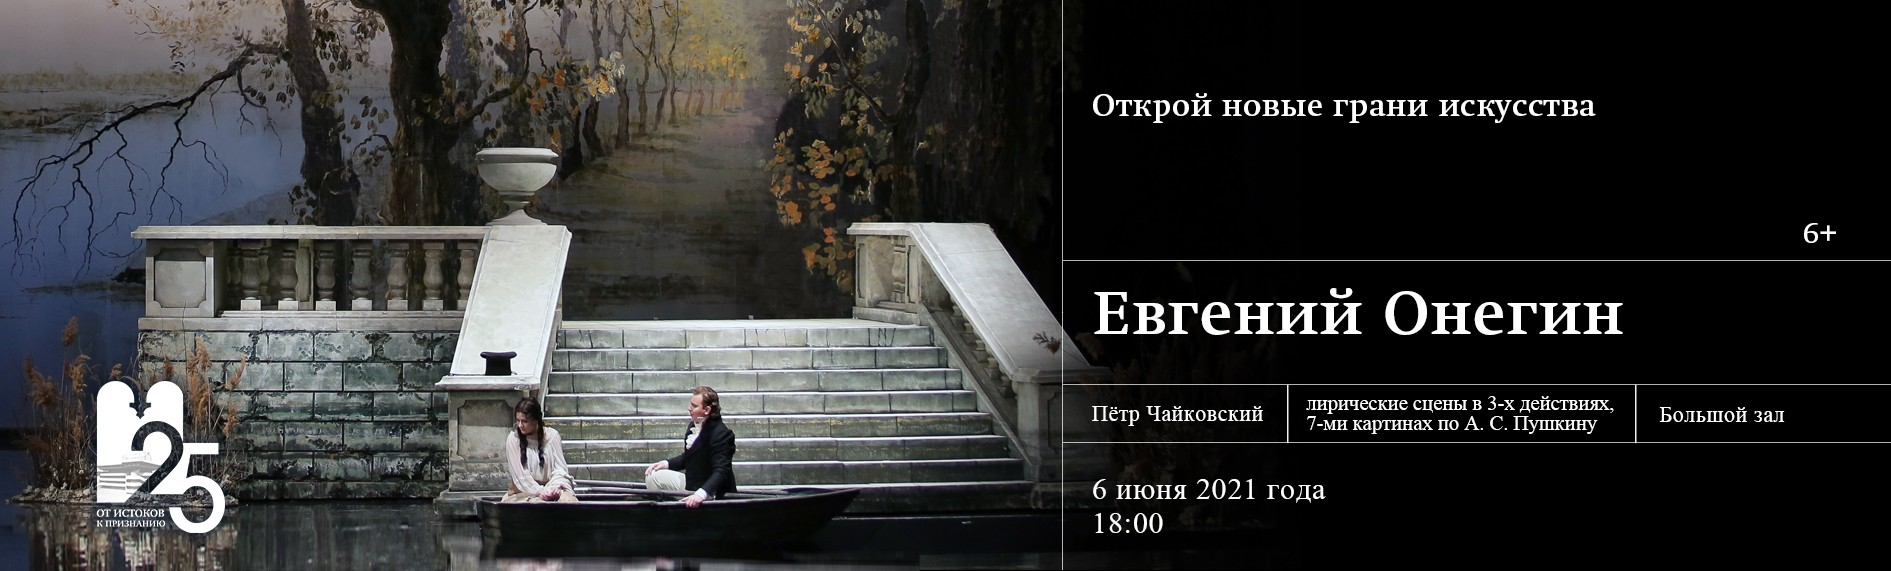 "Опера ""Евгений Онегин"""